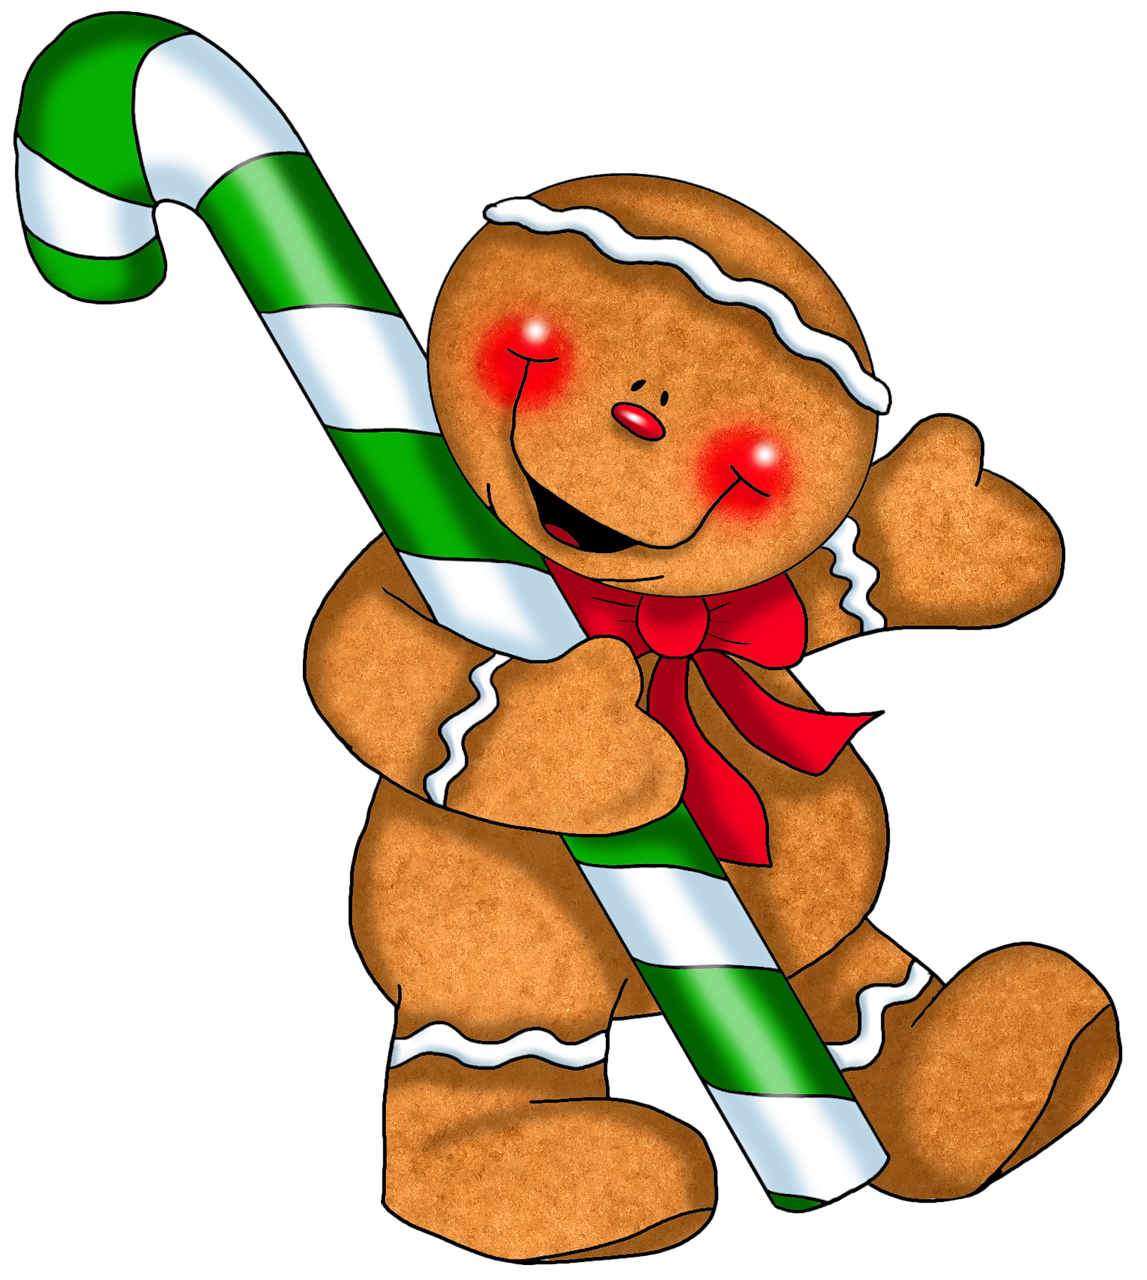 Merry Christmas clipart candy cane Cane Merry collection clip Candy